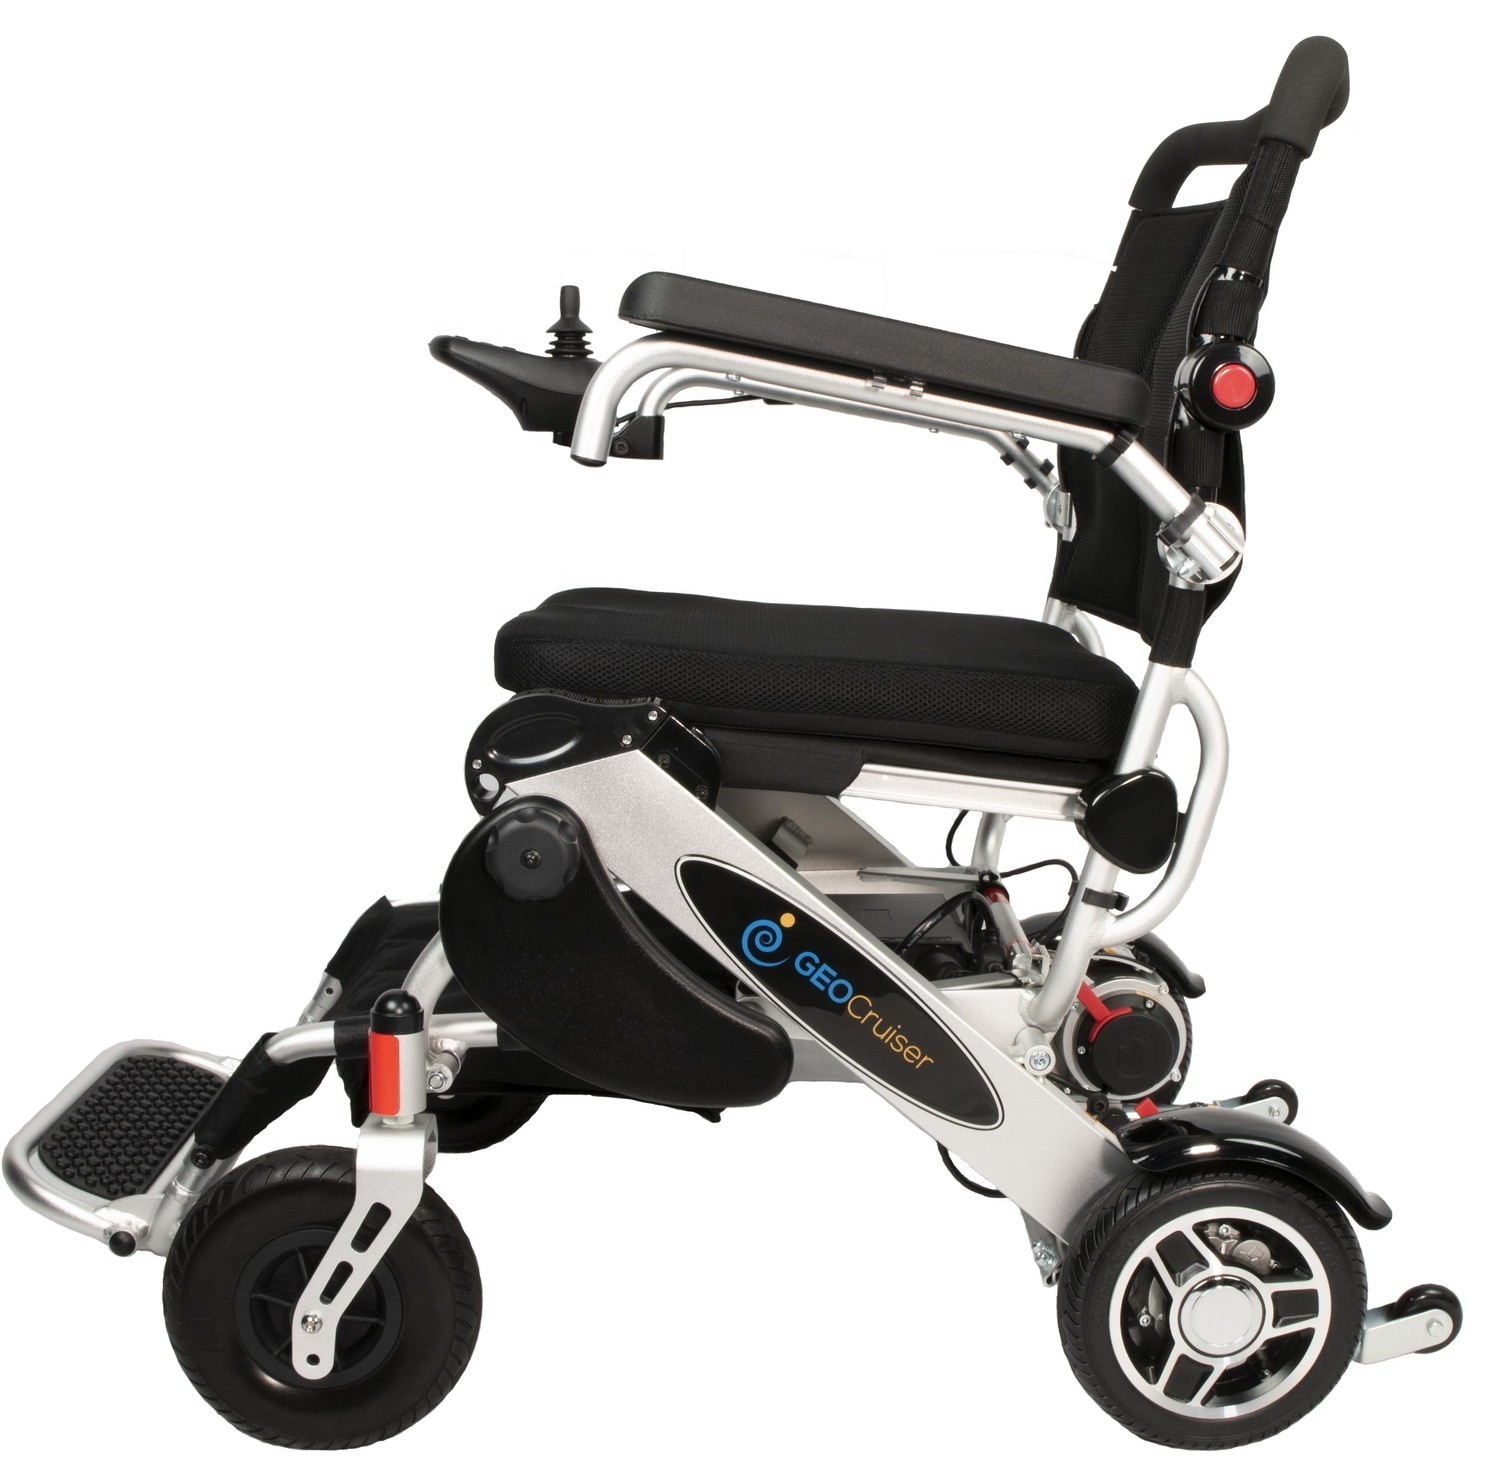 Geo Cruiser DX Lightweight Foldable Power Chair (Silver)